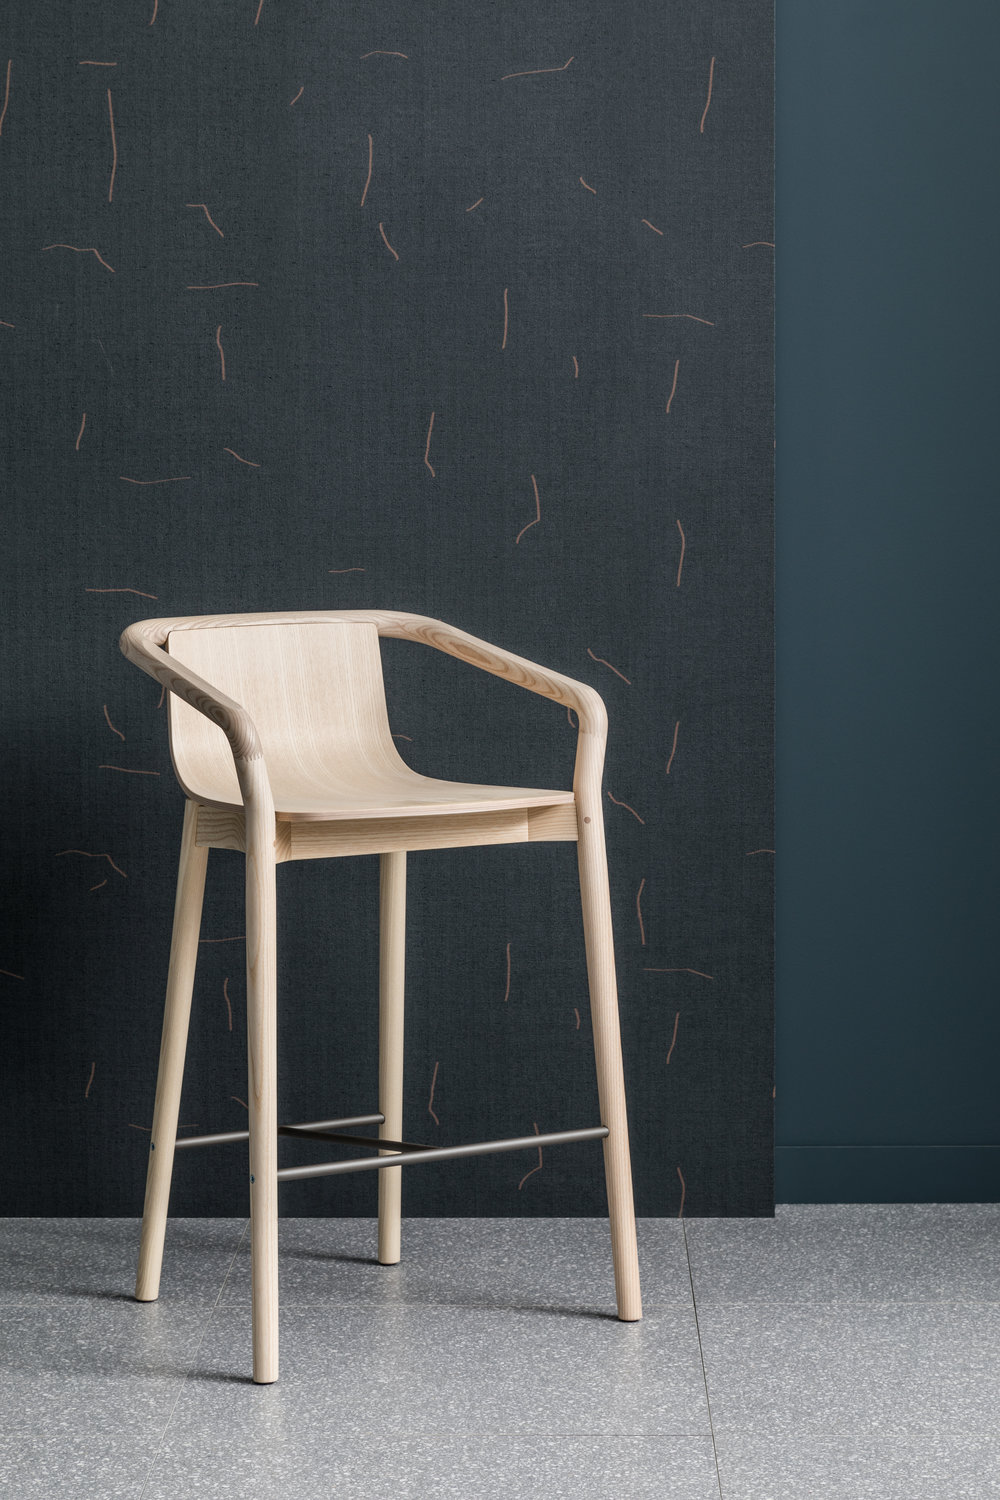 The new Thomas chair collection now has an expanded range of chairs designed for the home, restaurants and workspaces.